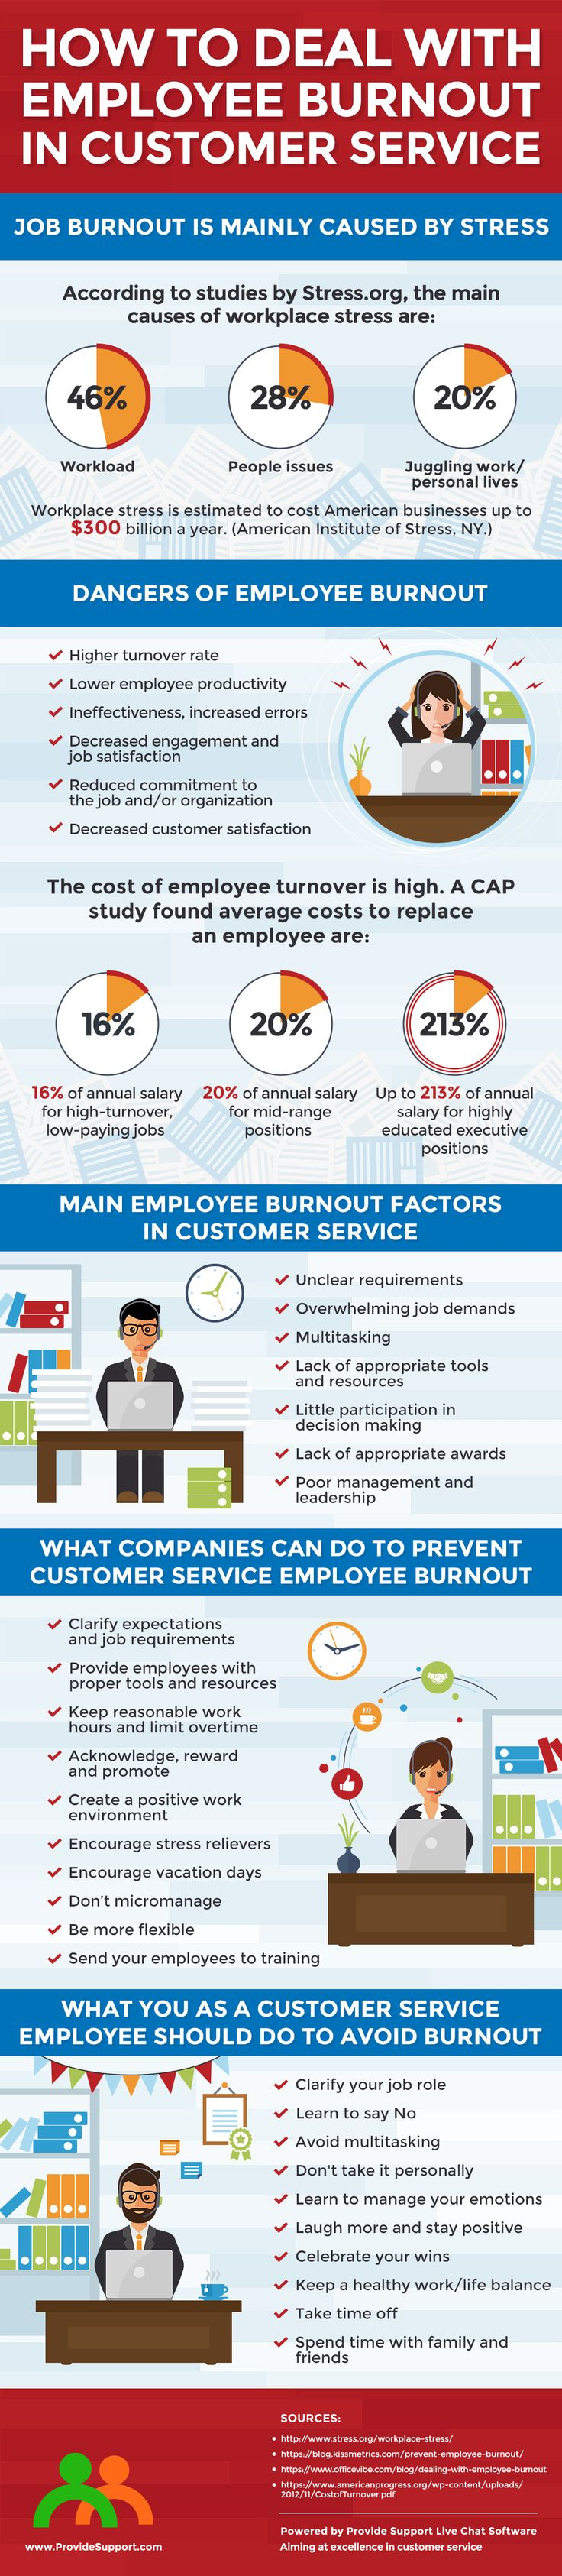 How to Deal with Employee Burnout in Customer Service (Infographic): http://www.providesupport.com/blog/how-to-deal-with-employee-burnout-in-customer-service/ #customerservice #custserv